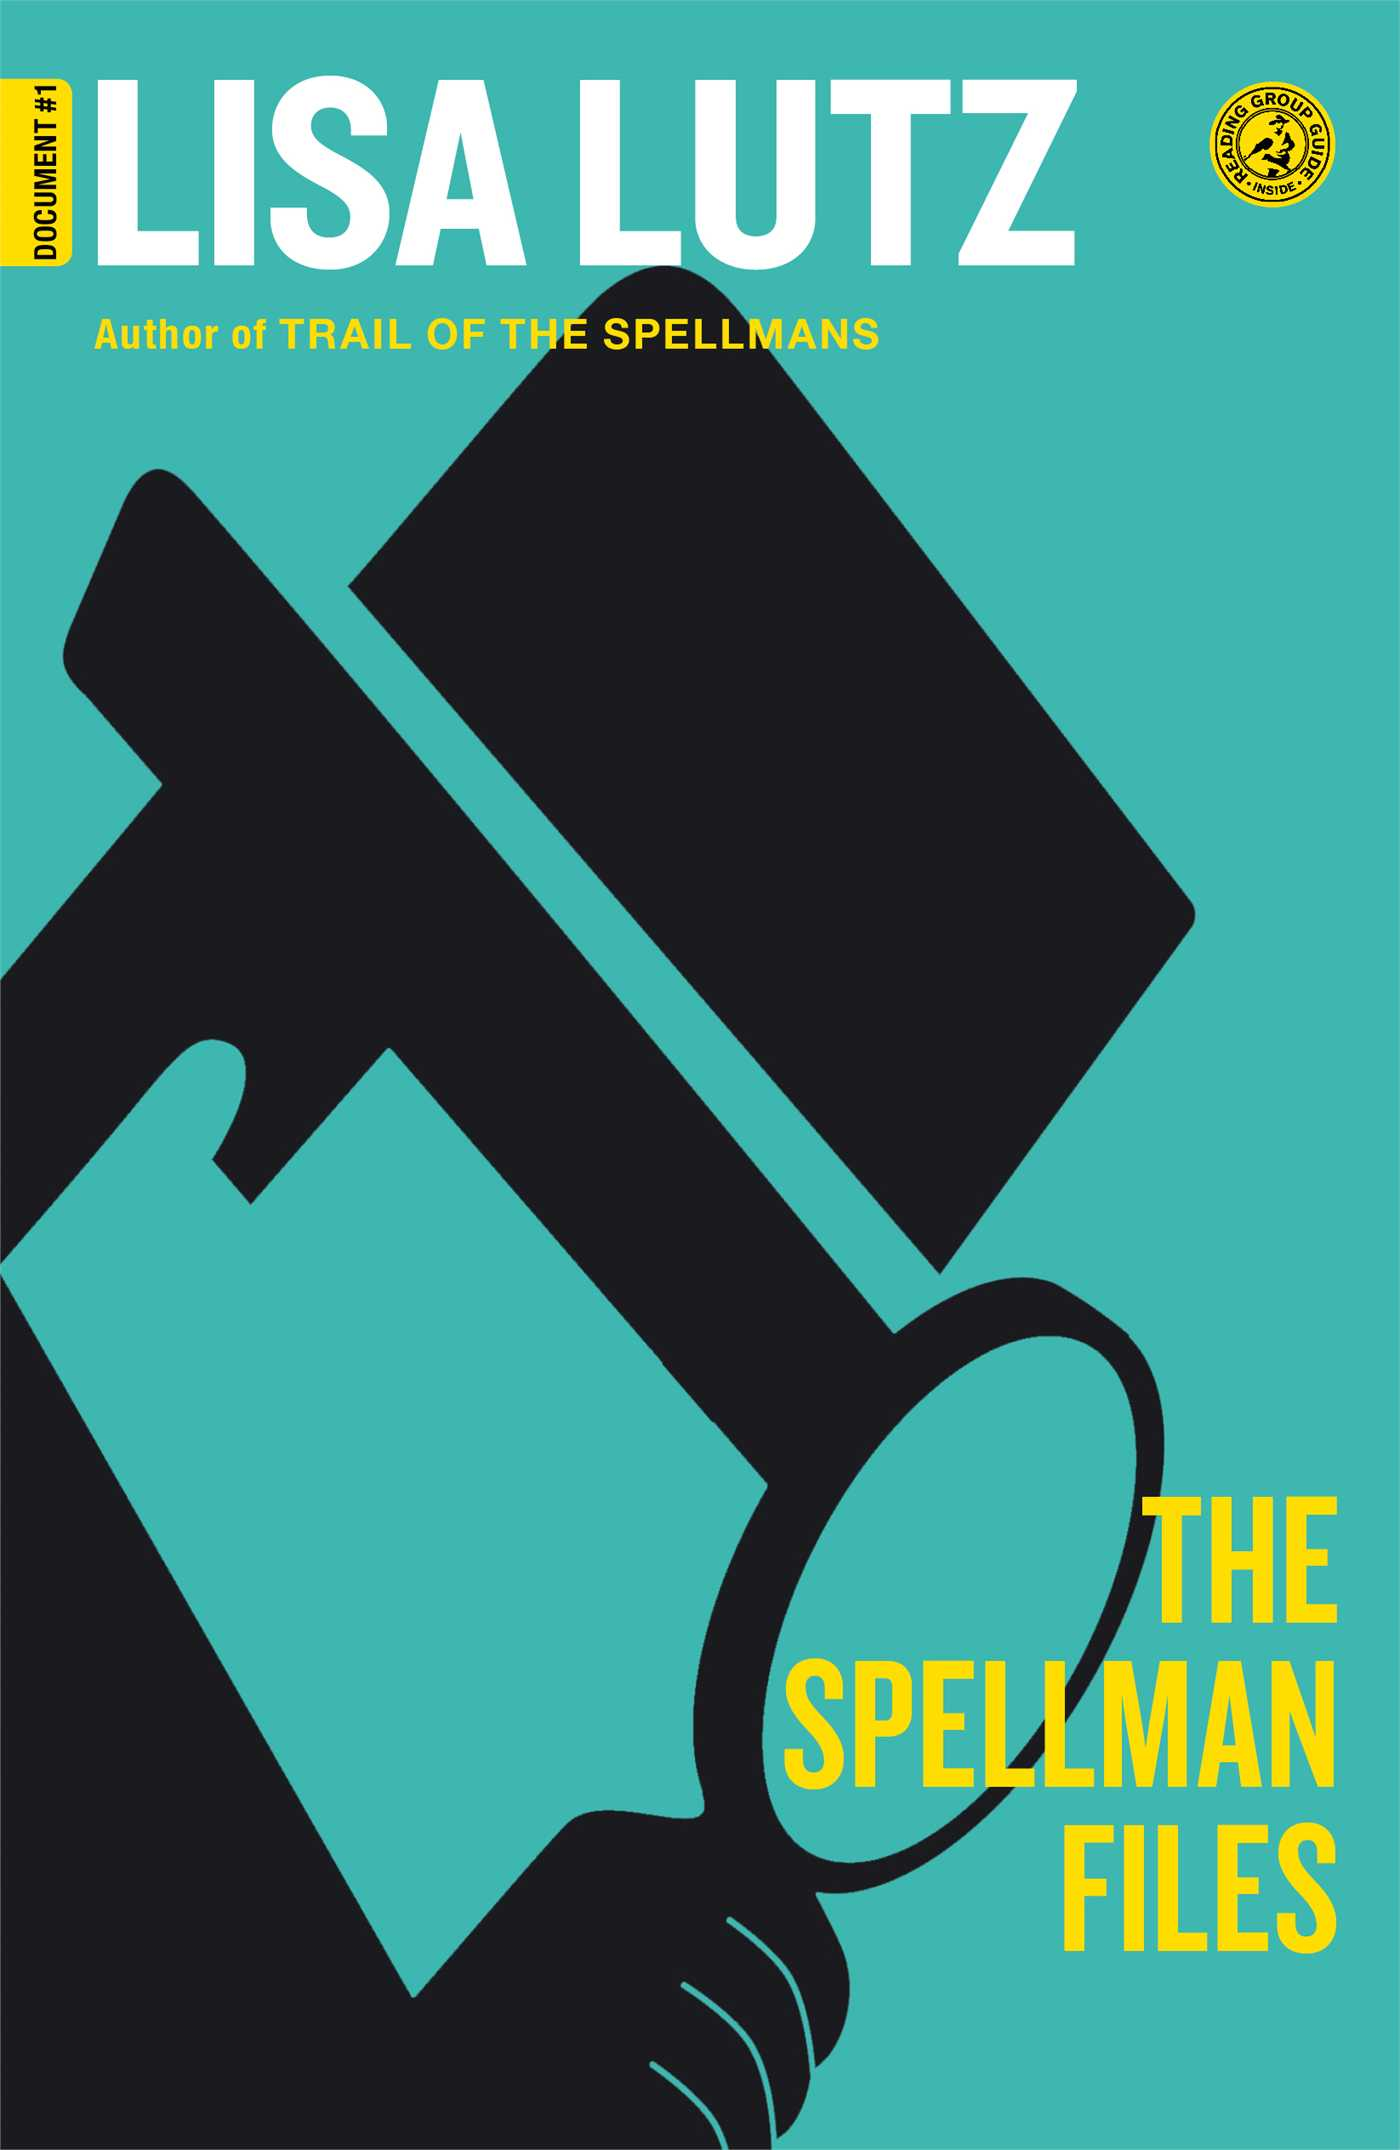 Spellman-files-9781416539209_hr